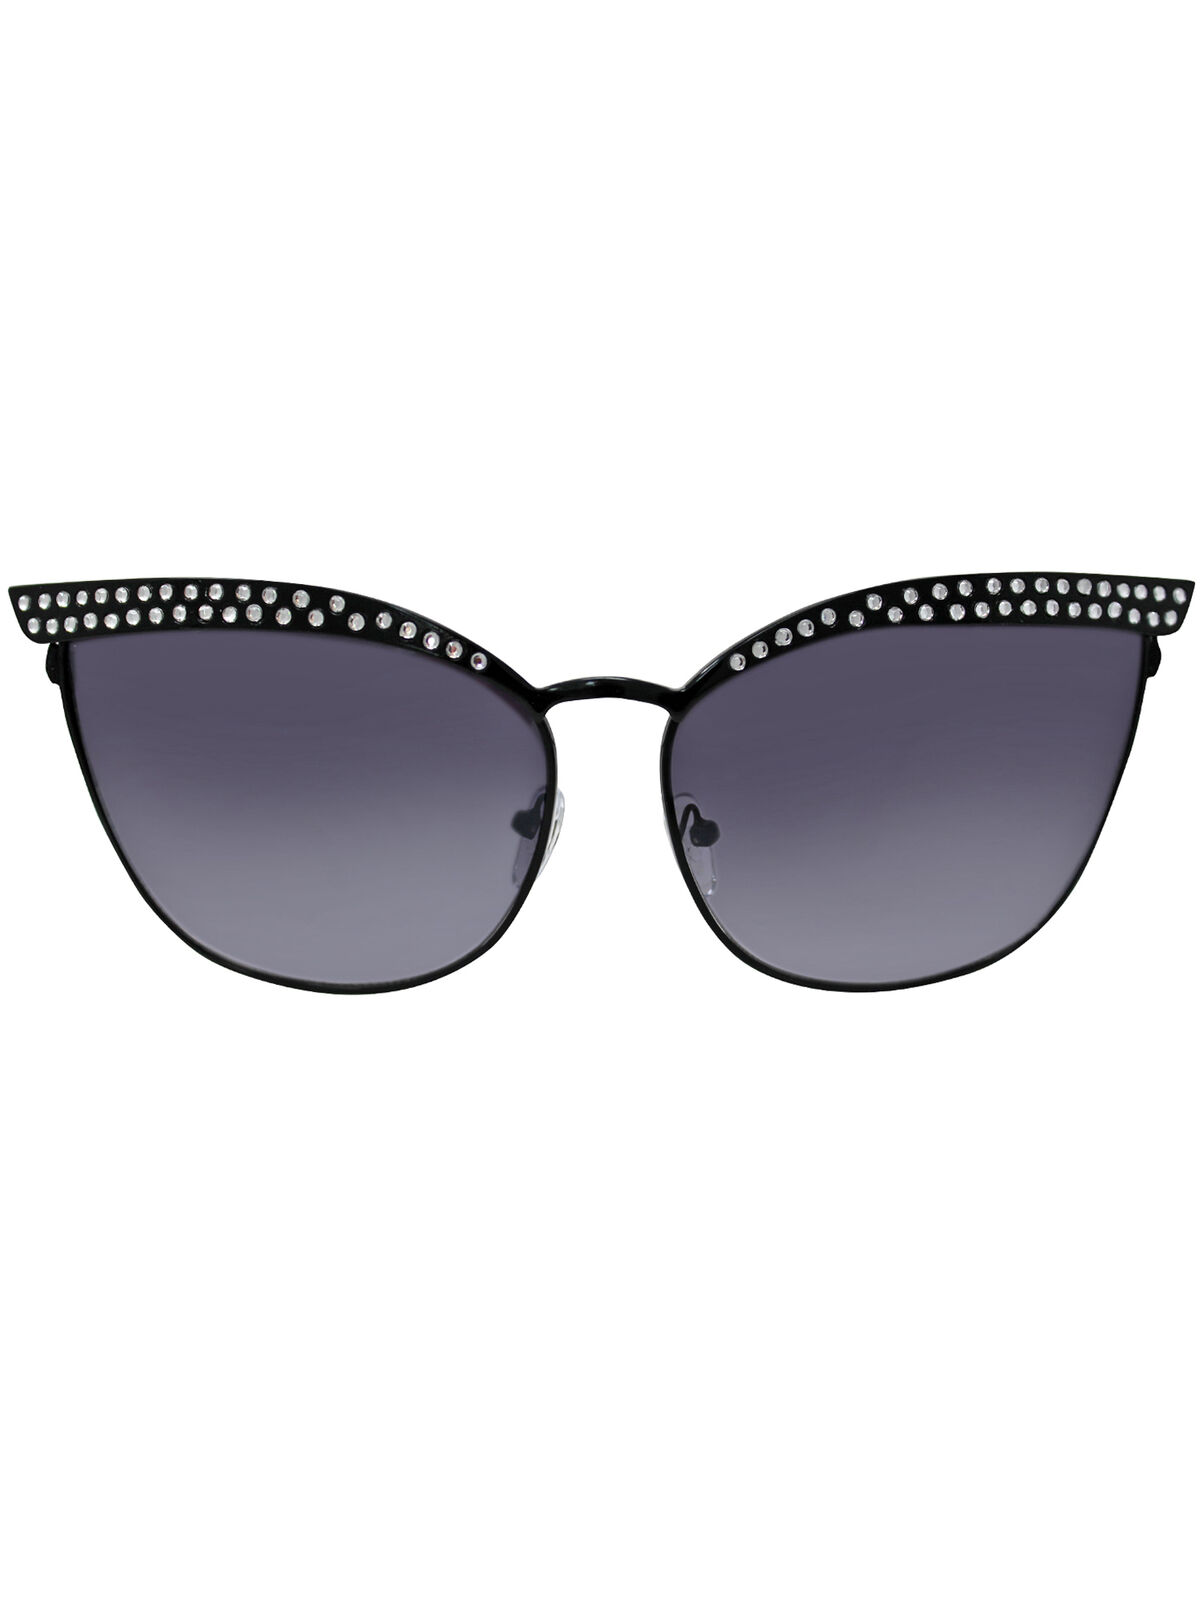 CAT EYE METAL FRAME SUNGLASSES WITH CASE